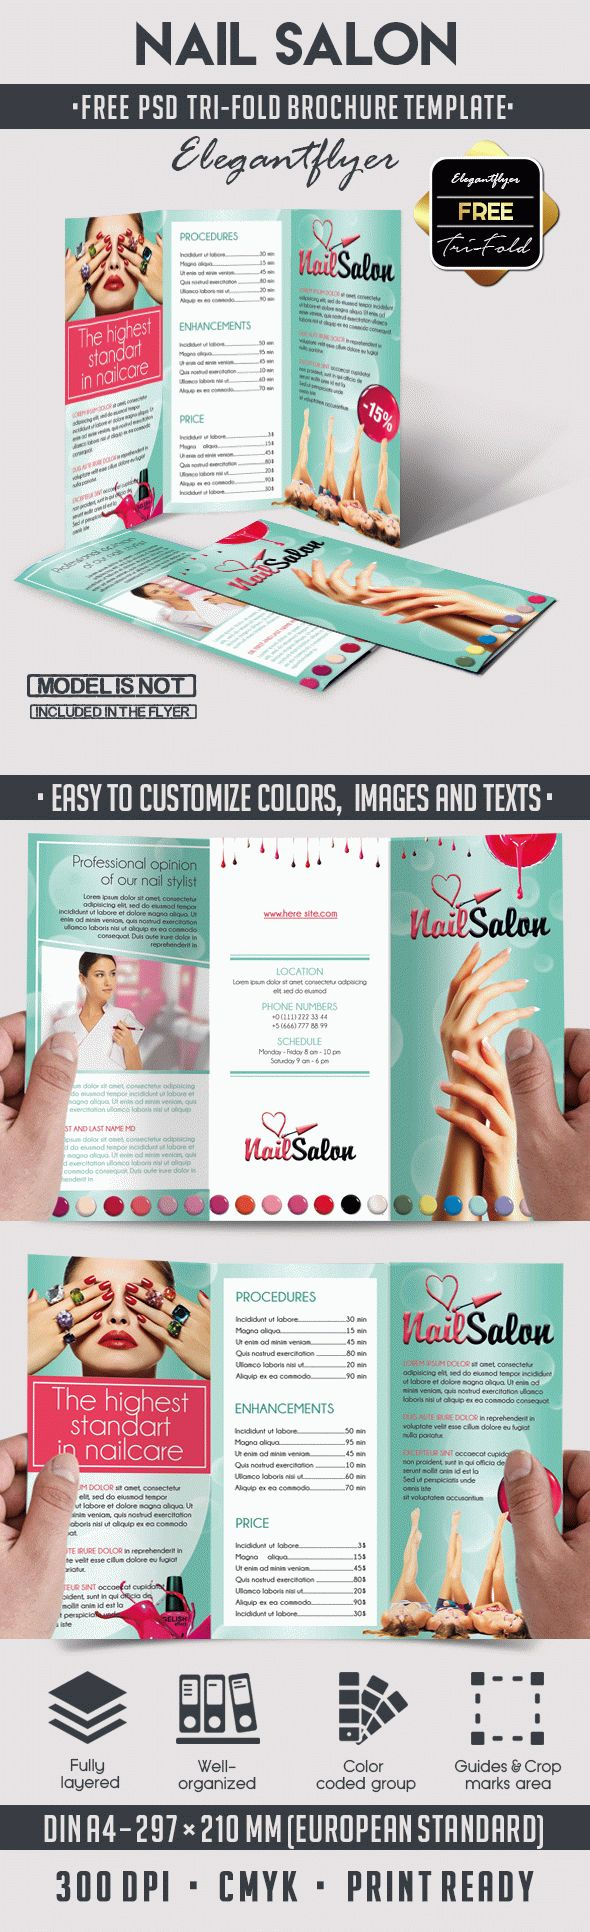 Nail free tri fold psd brochure template by elegantflyer for Tri fold brochure template psd